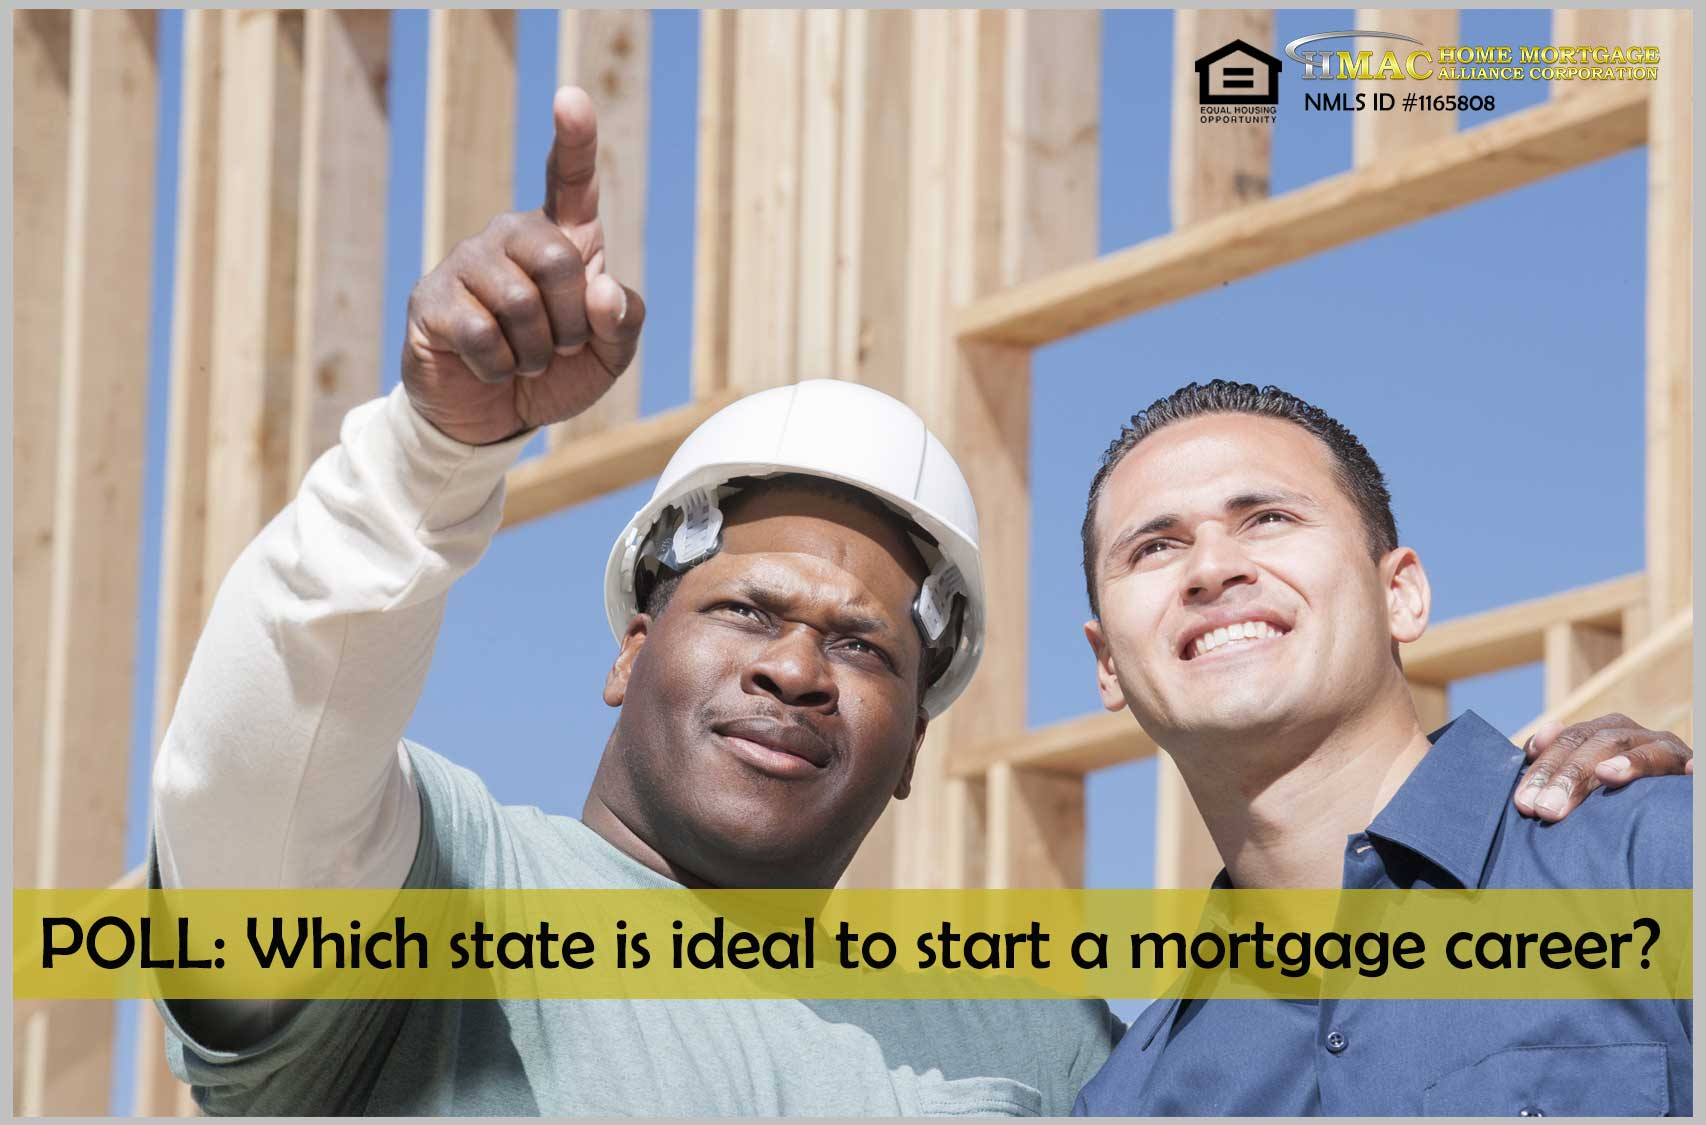 Which state is ideal to start your mortgage career?